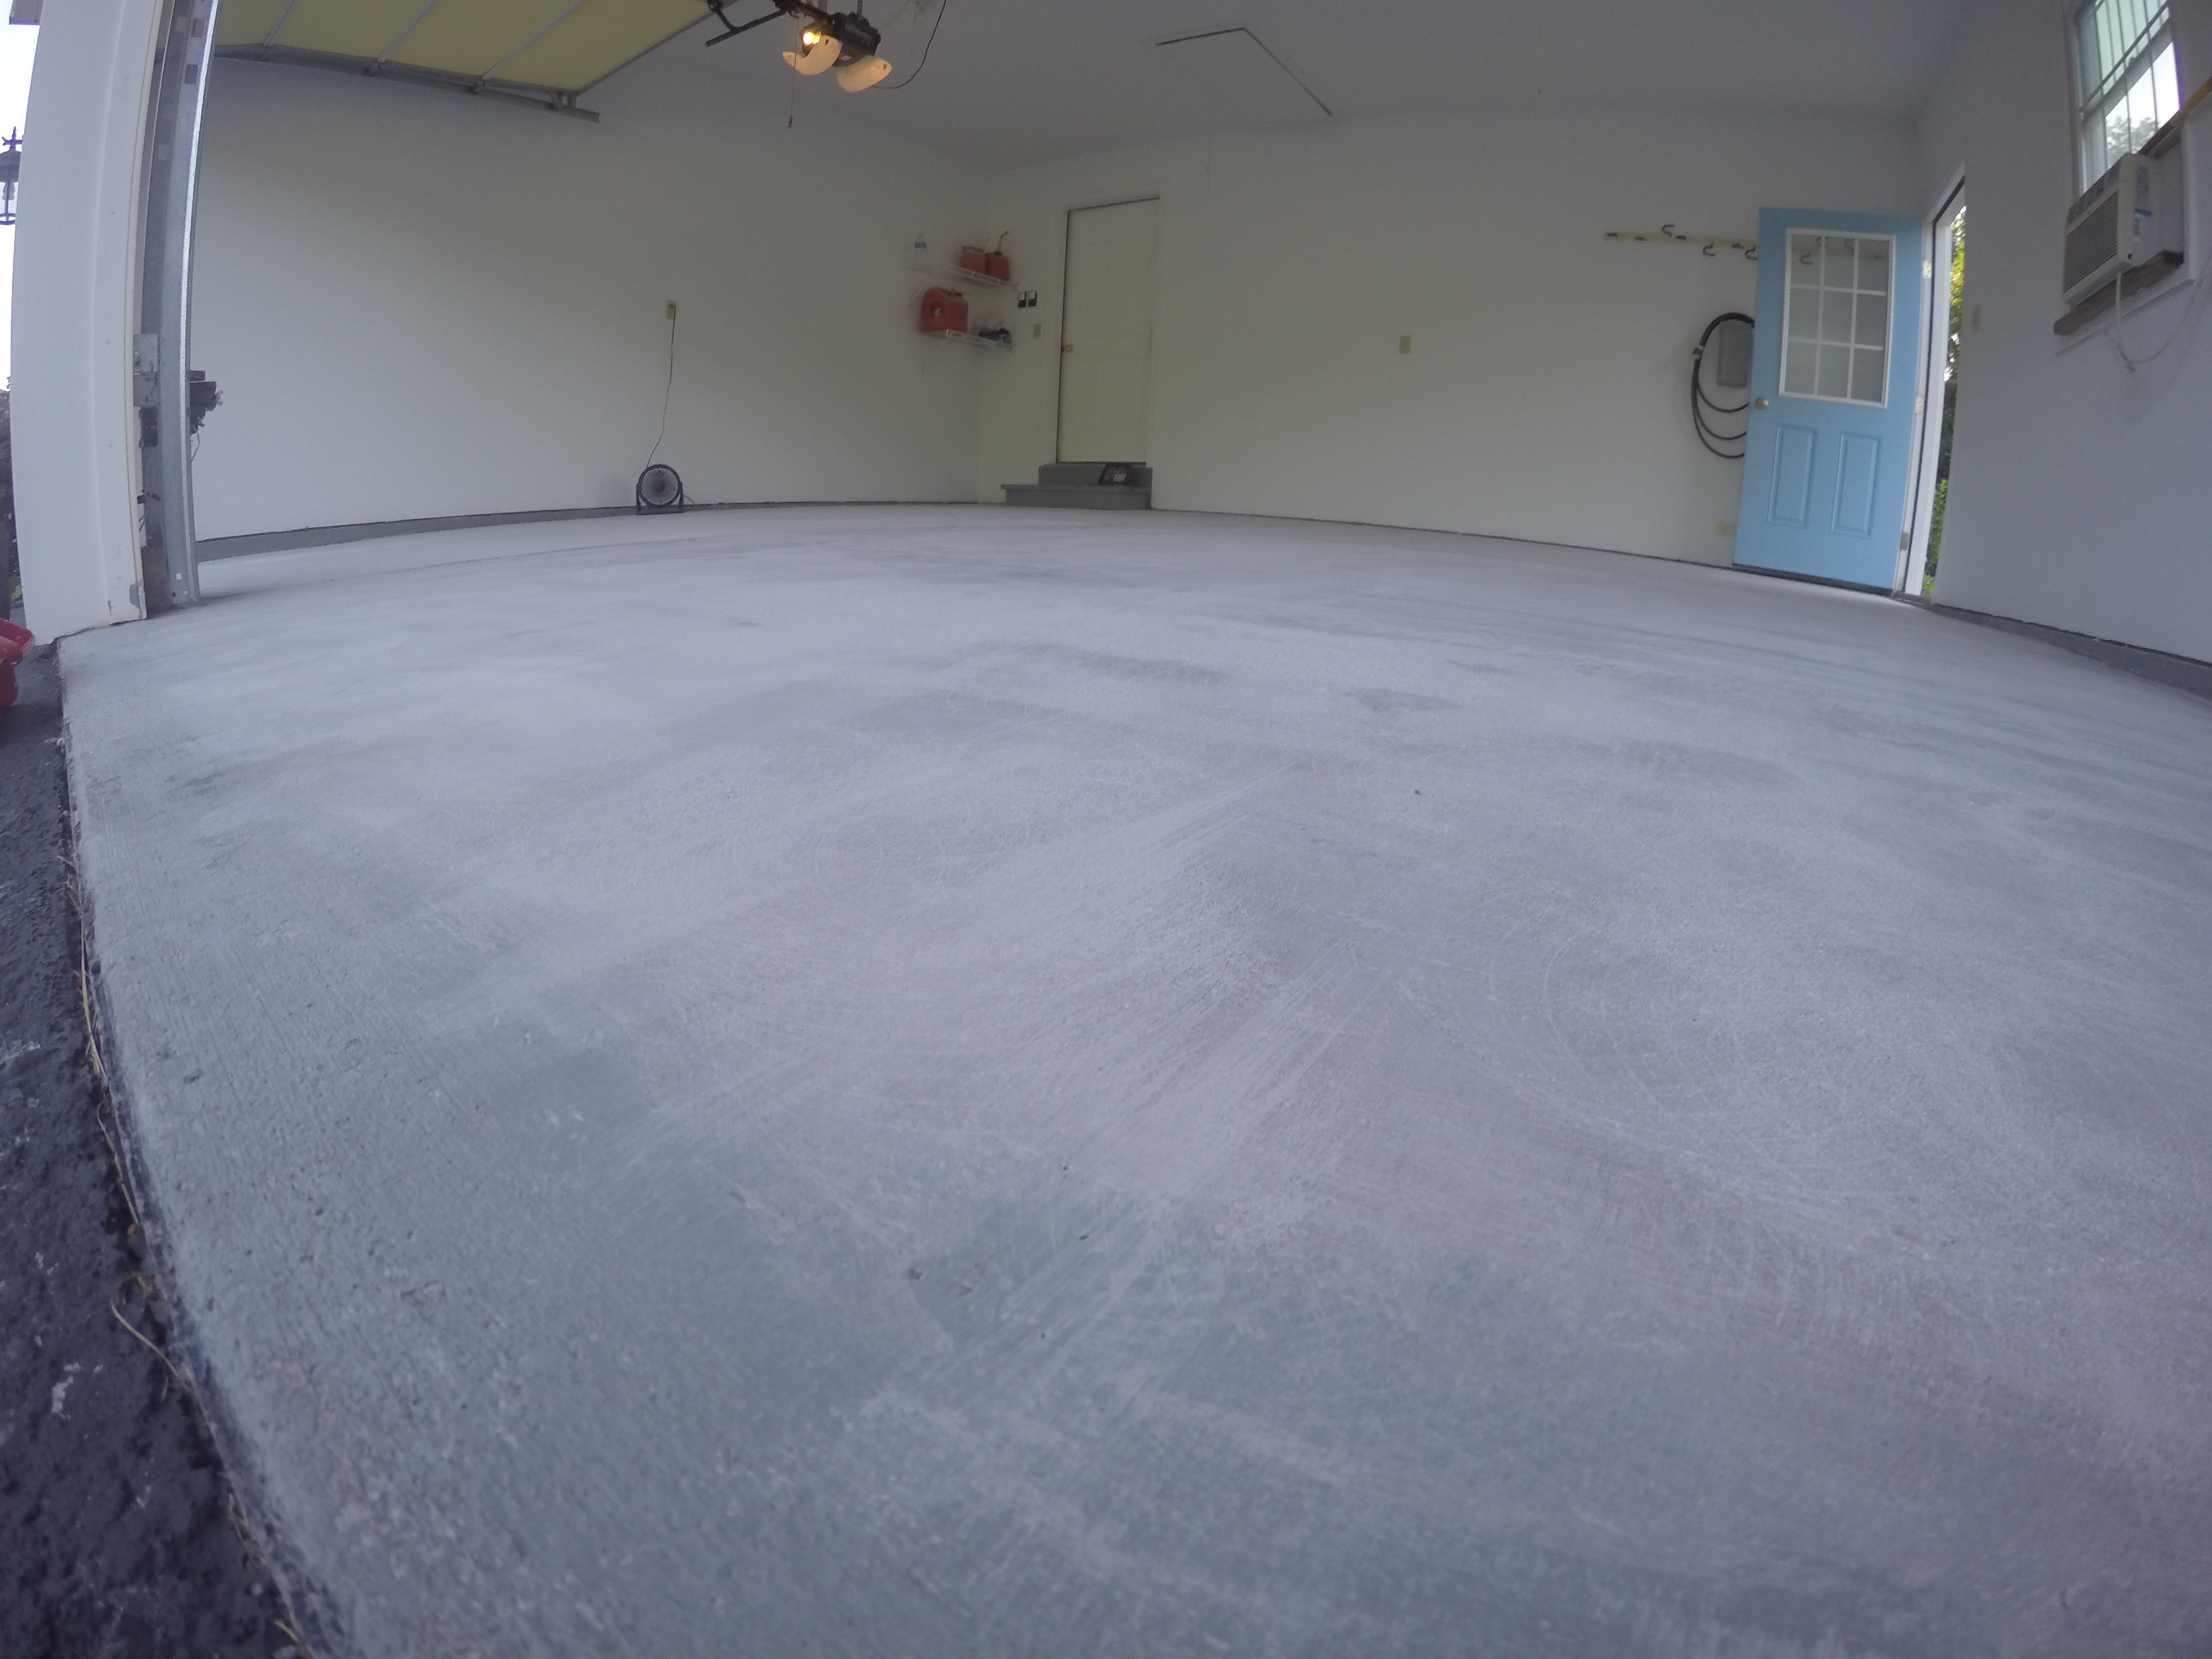 floor garage diy outstanding floors rocksolid covering ideas coating image feature flooringas rock solid